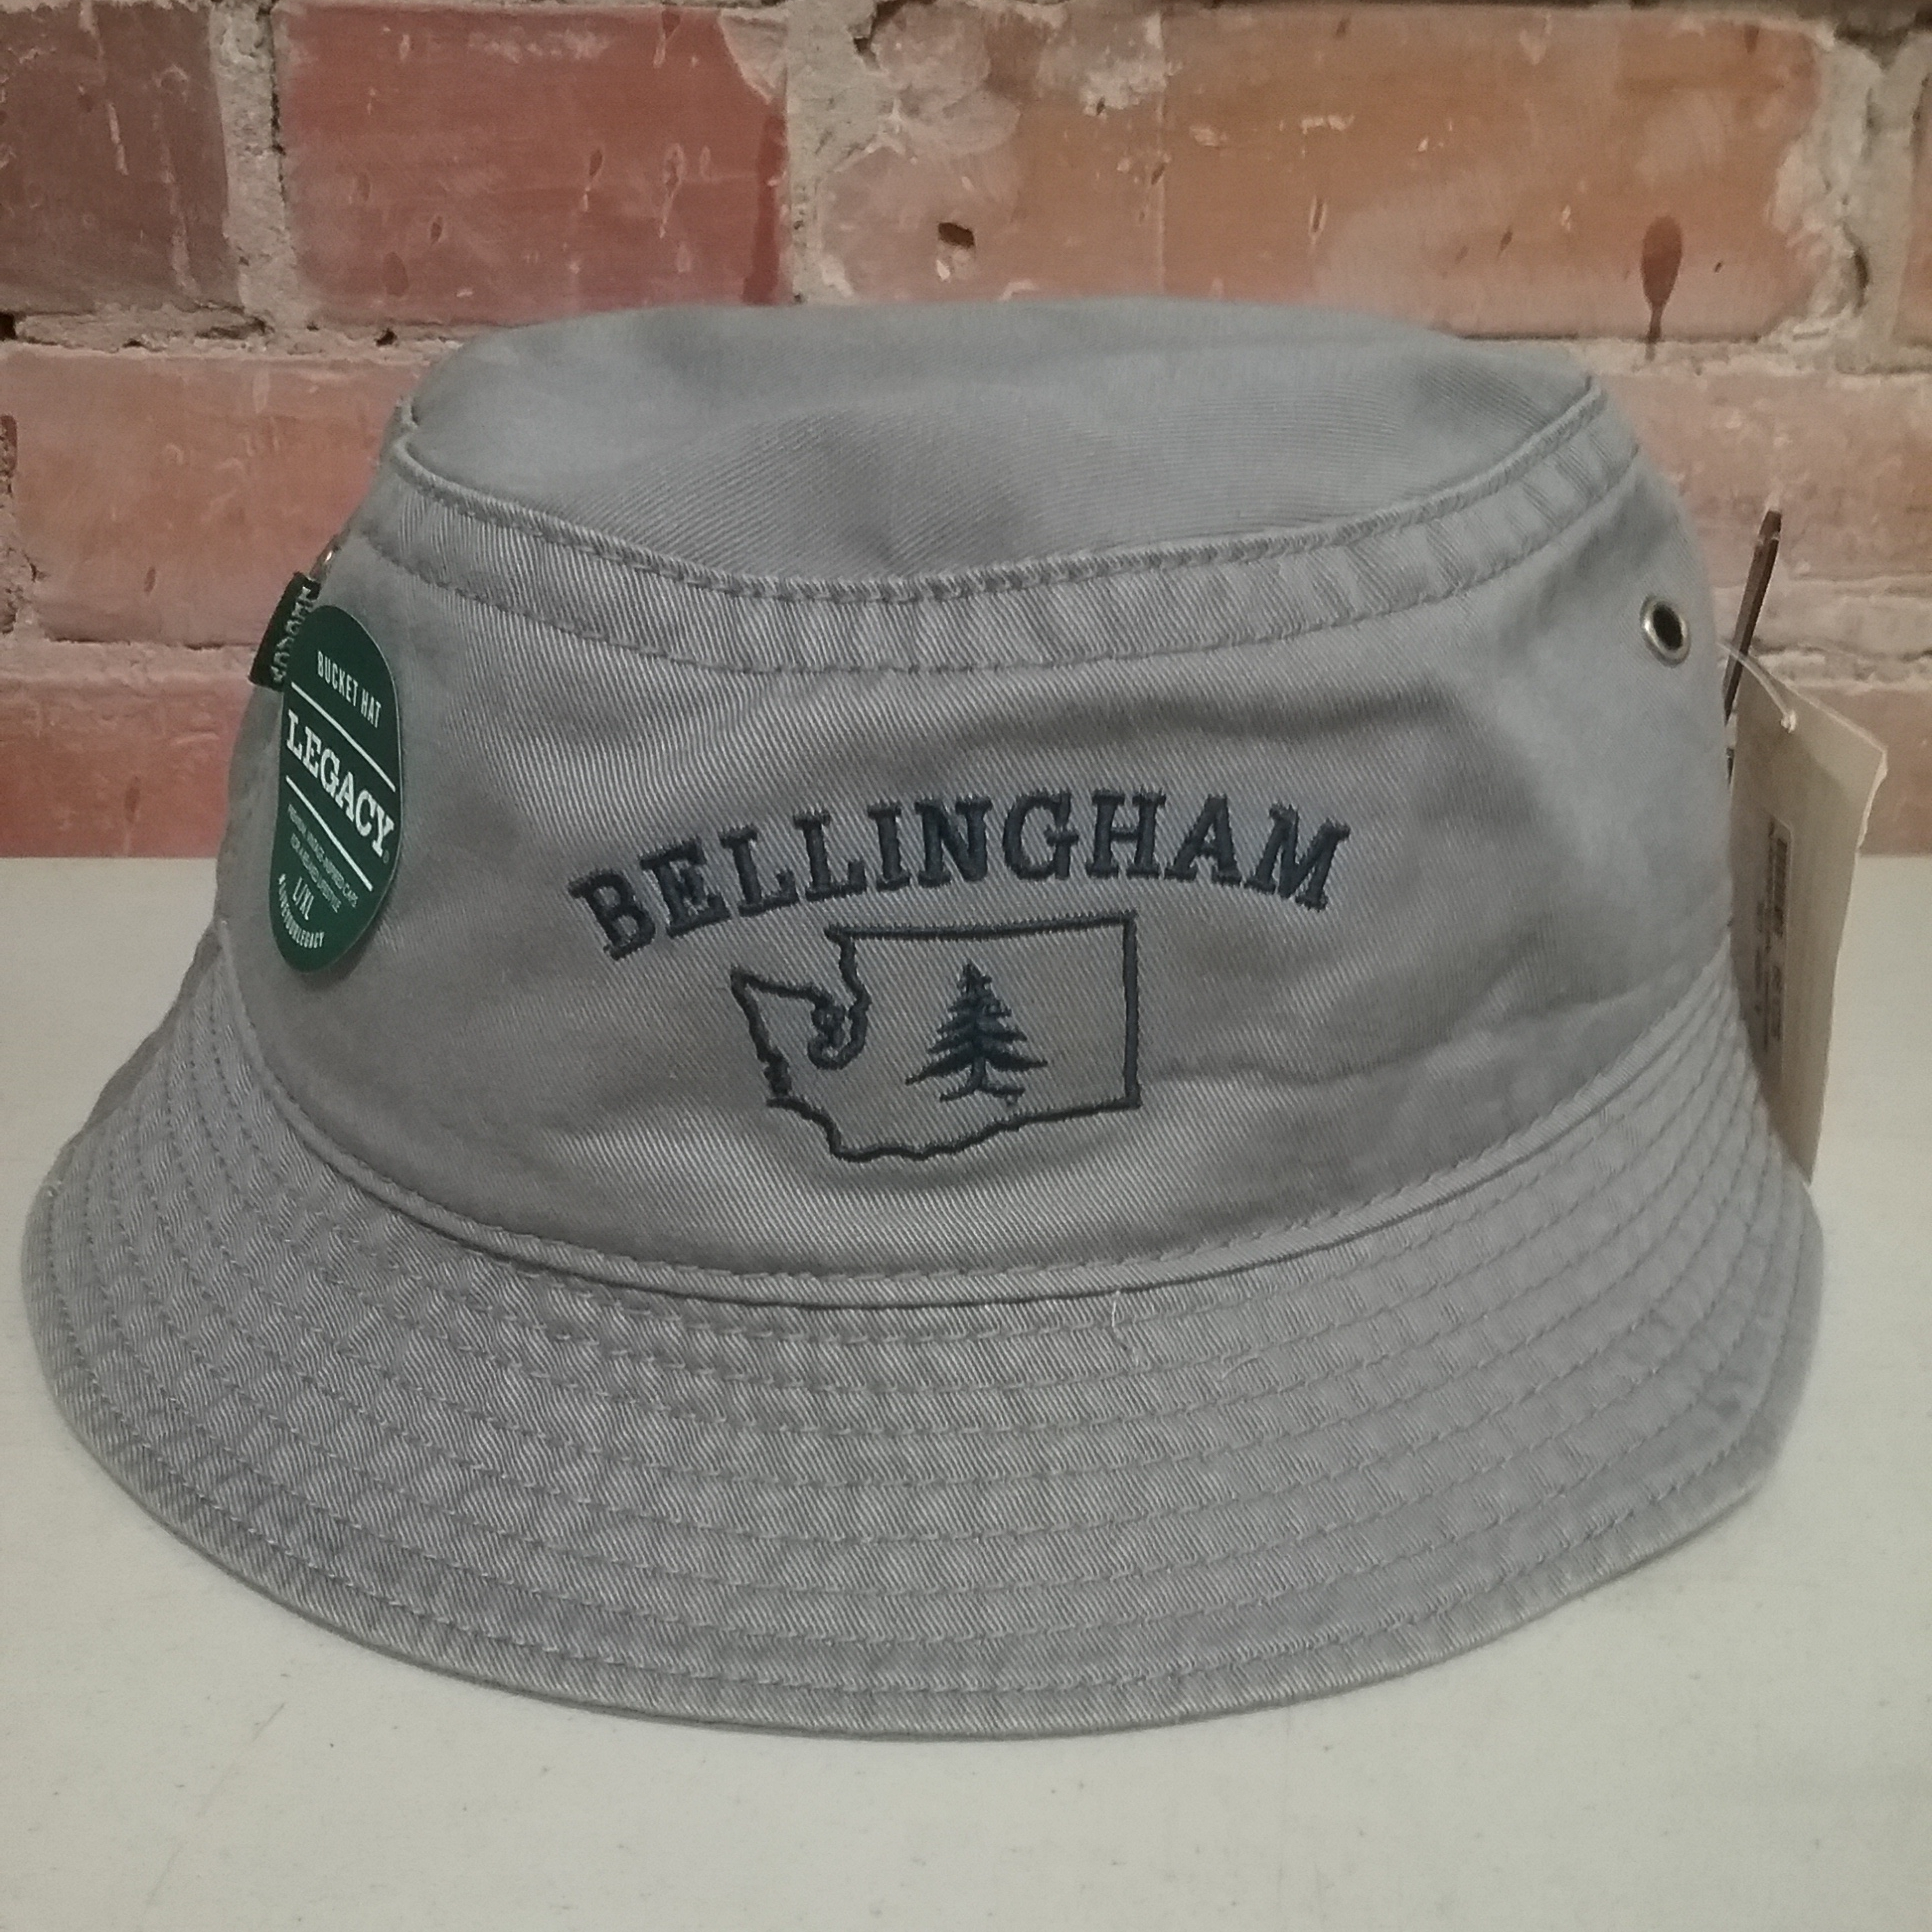 Bellingham Twill Bucket Hat